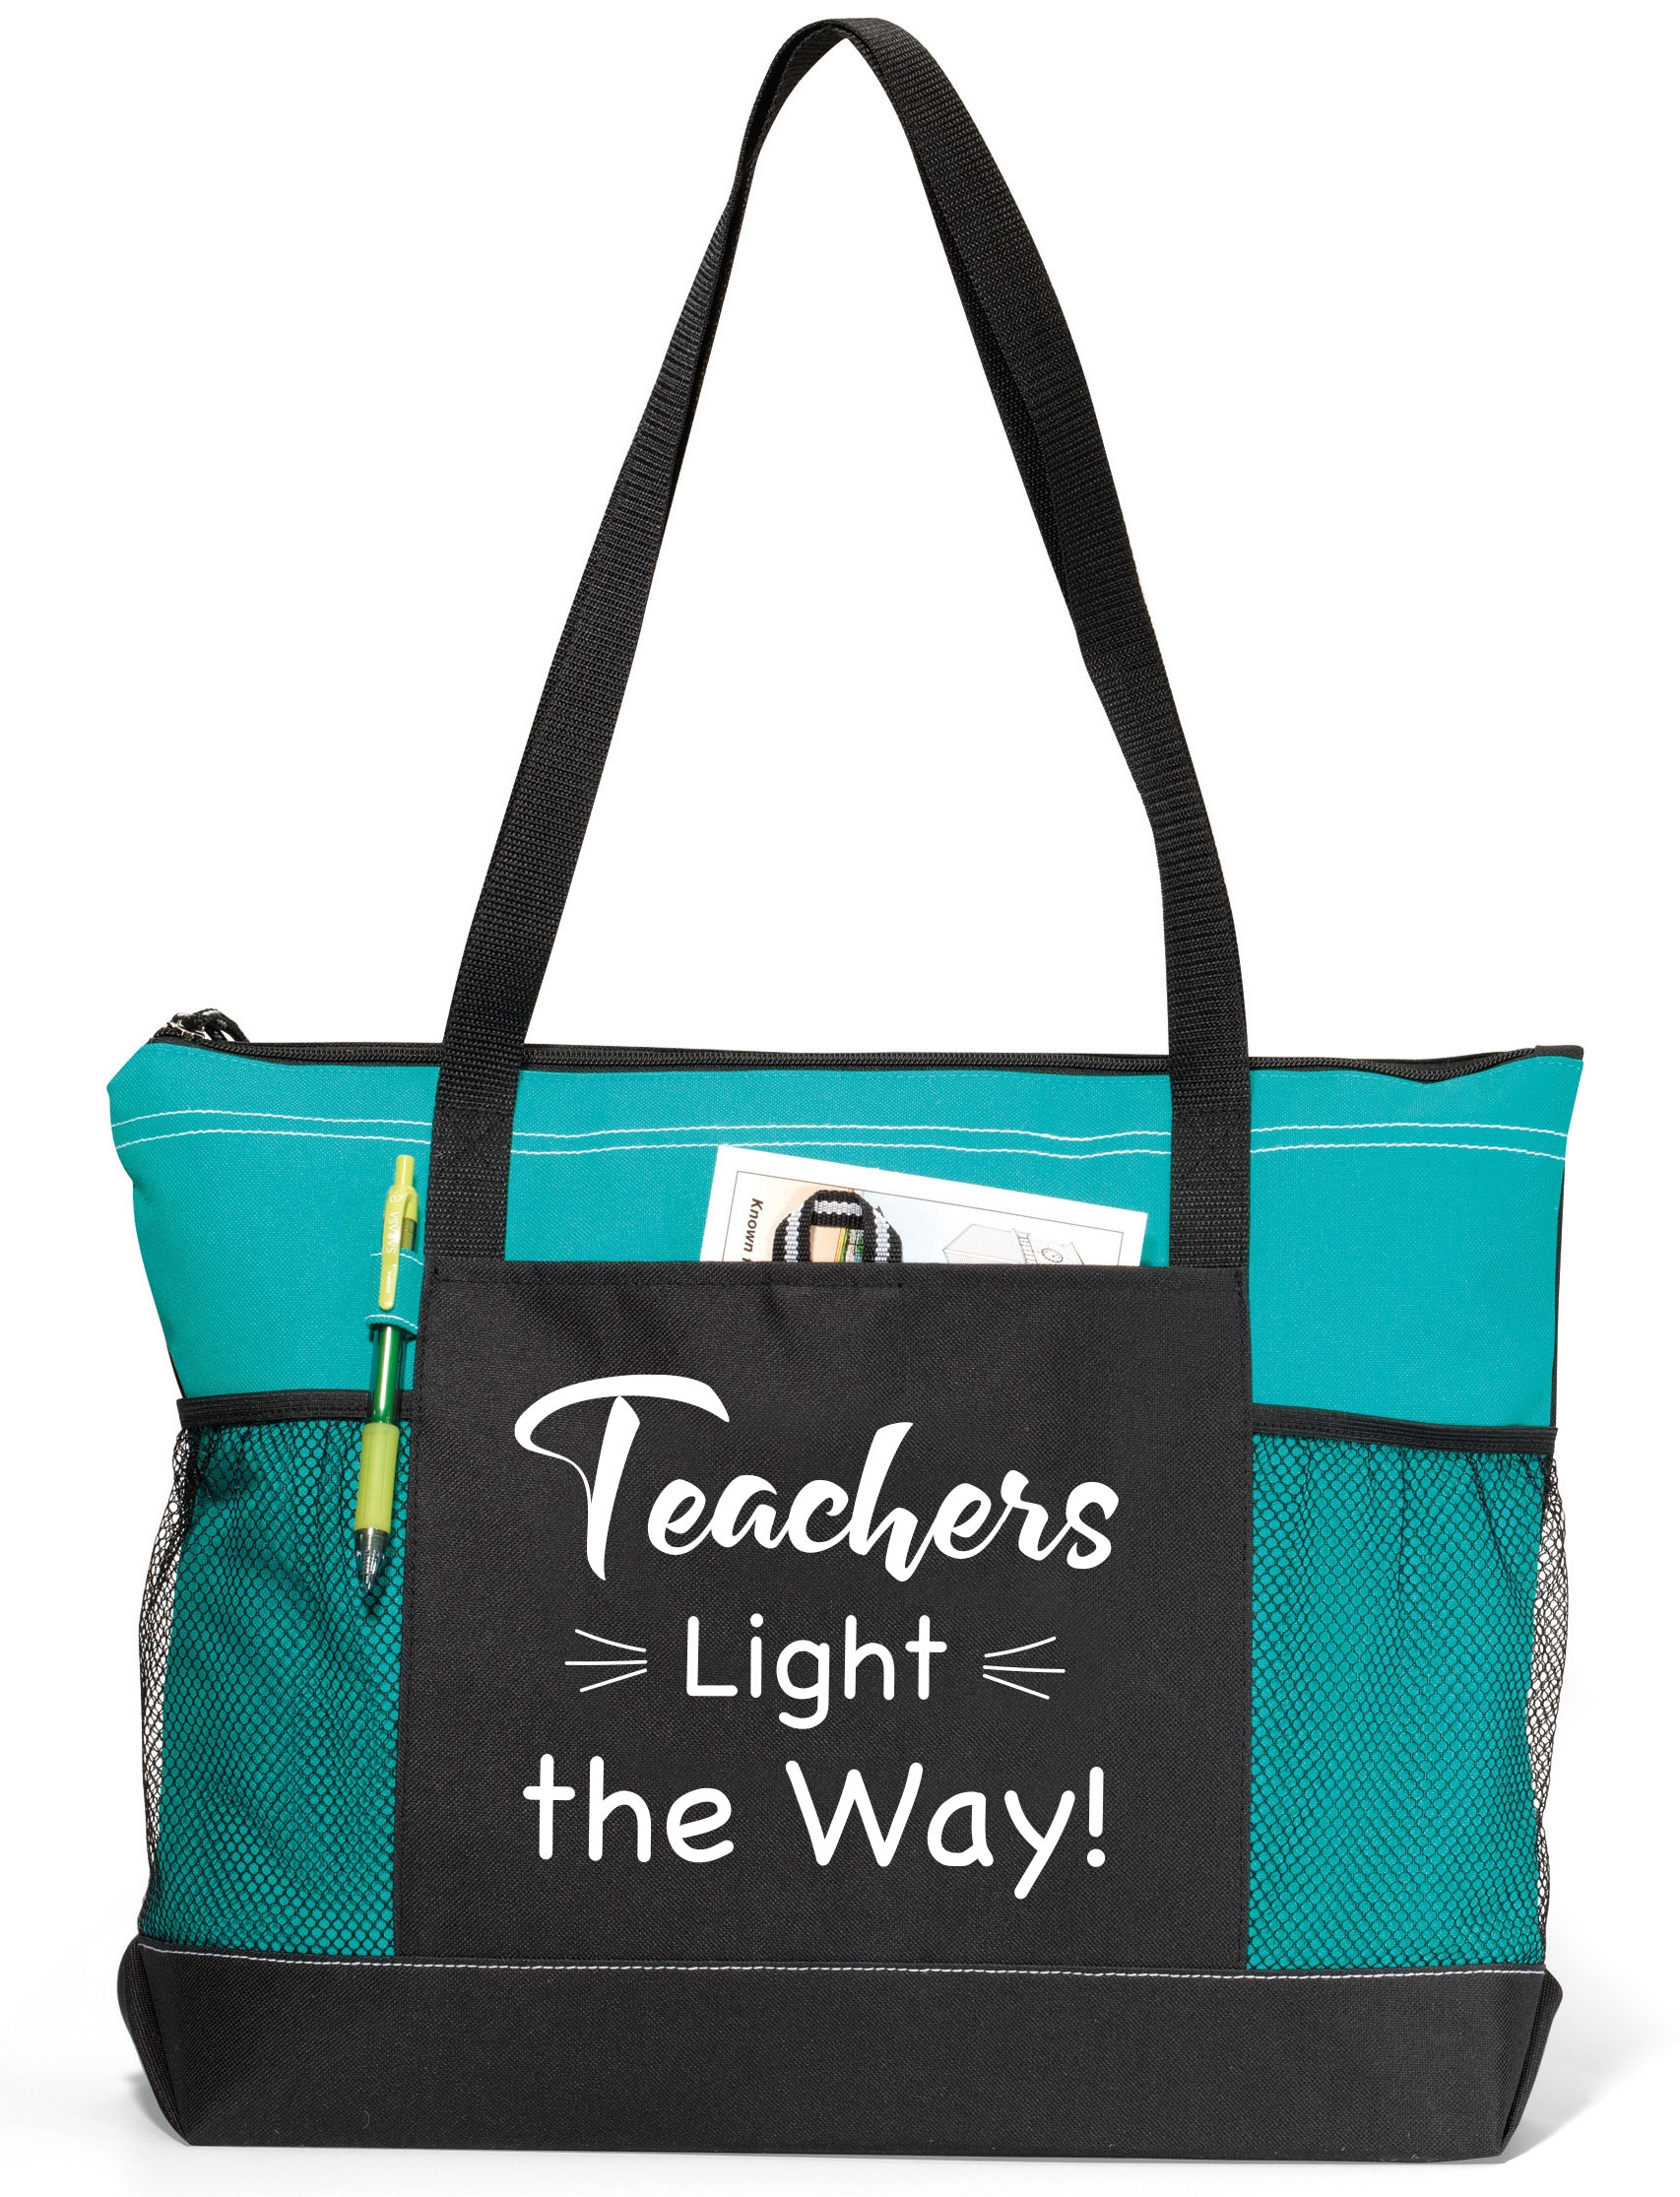 Teal tote bag with teacher appreciation saying